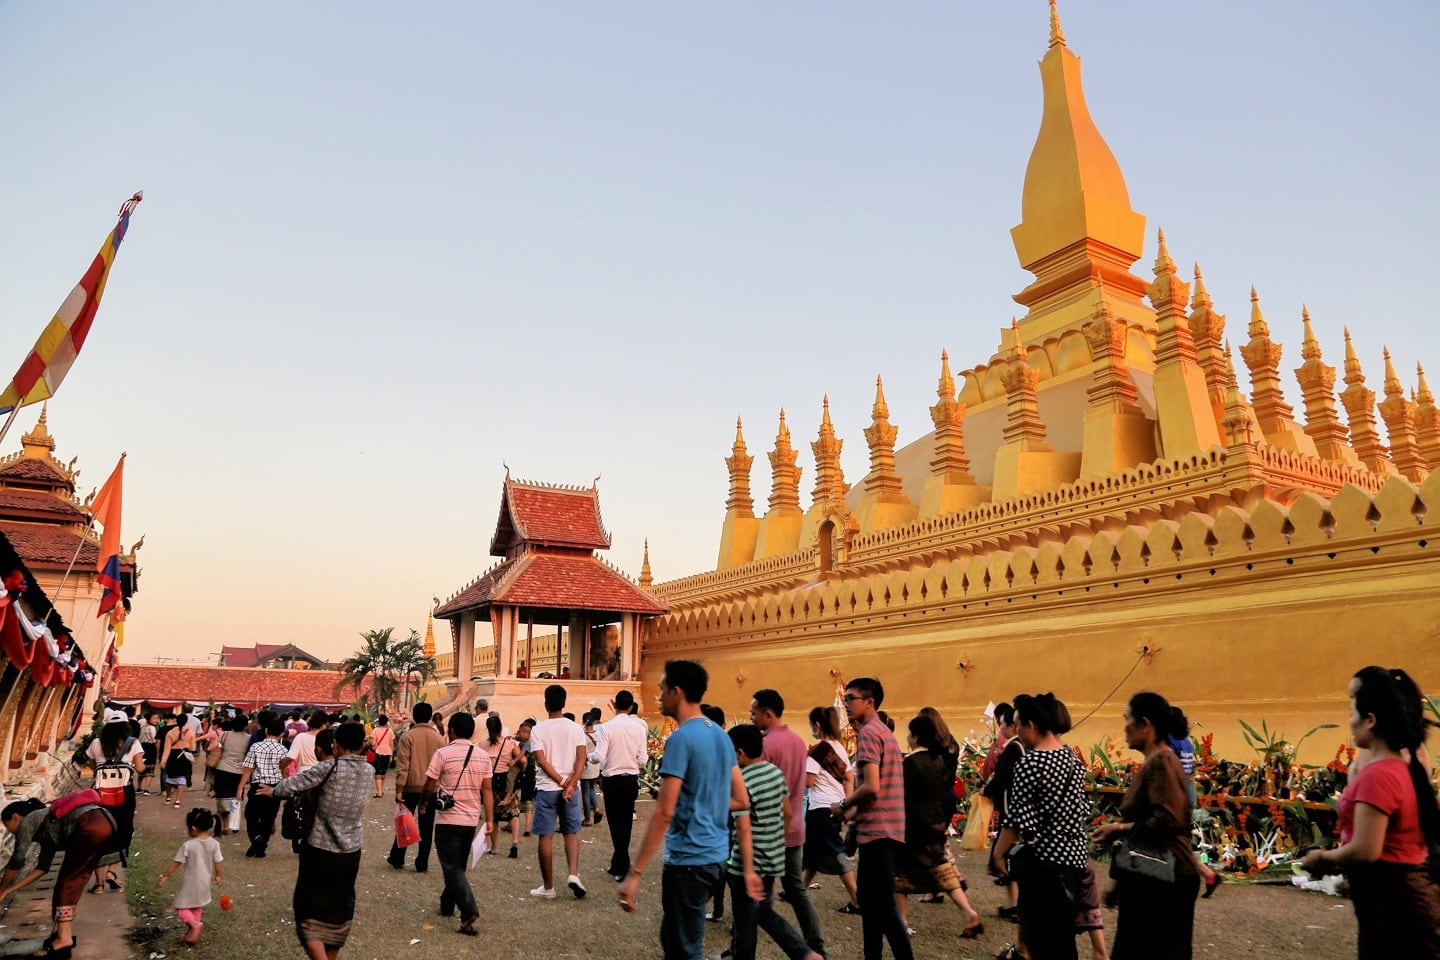 process around That Luang stupa in Vientiane